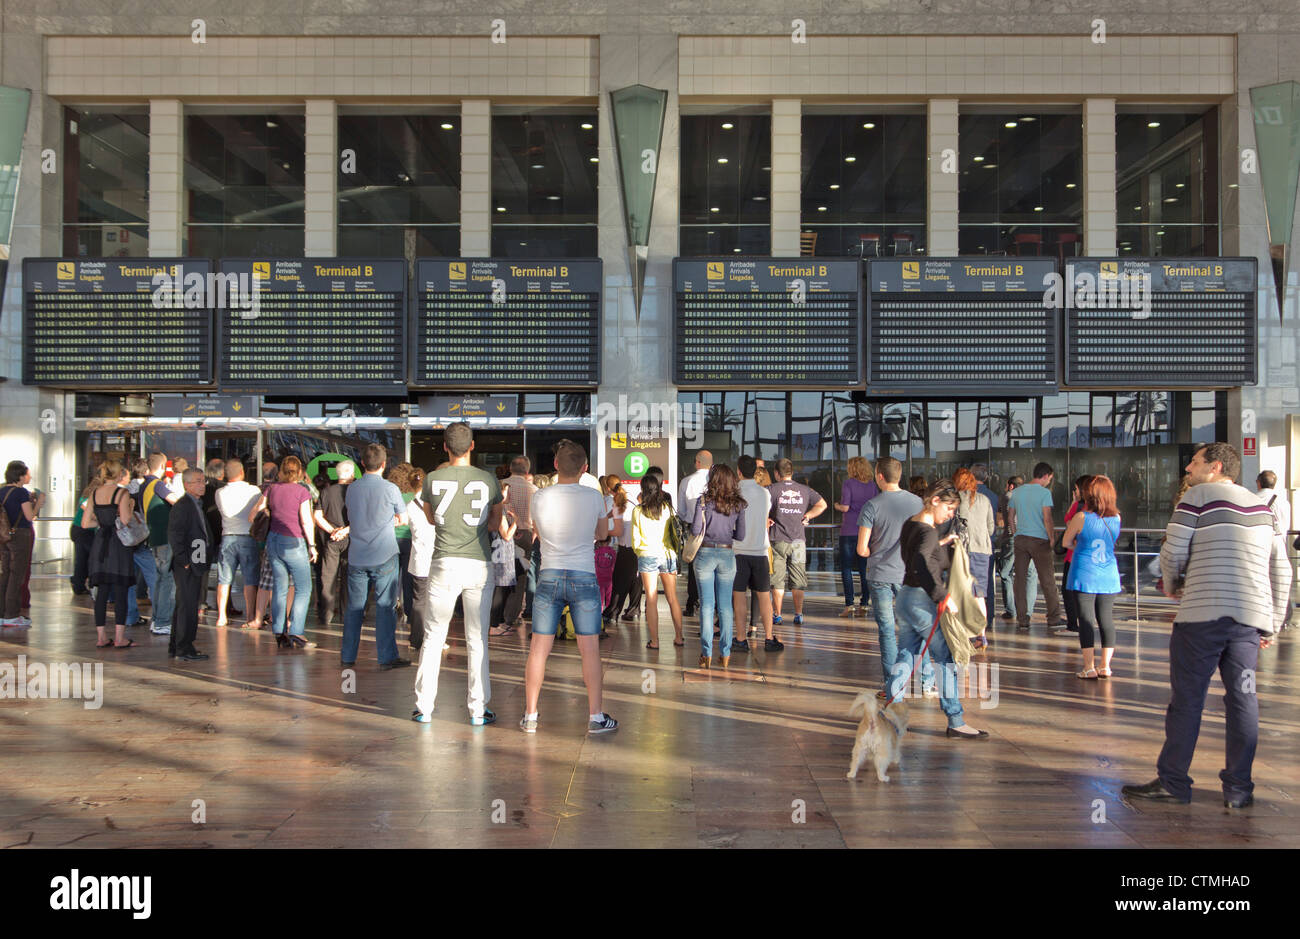 People waiting in the arrivals hall at El Prat Airport, Barcelona, Spain. - Stock Image